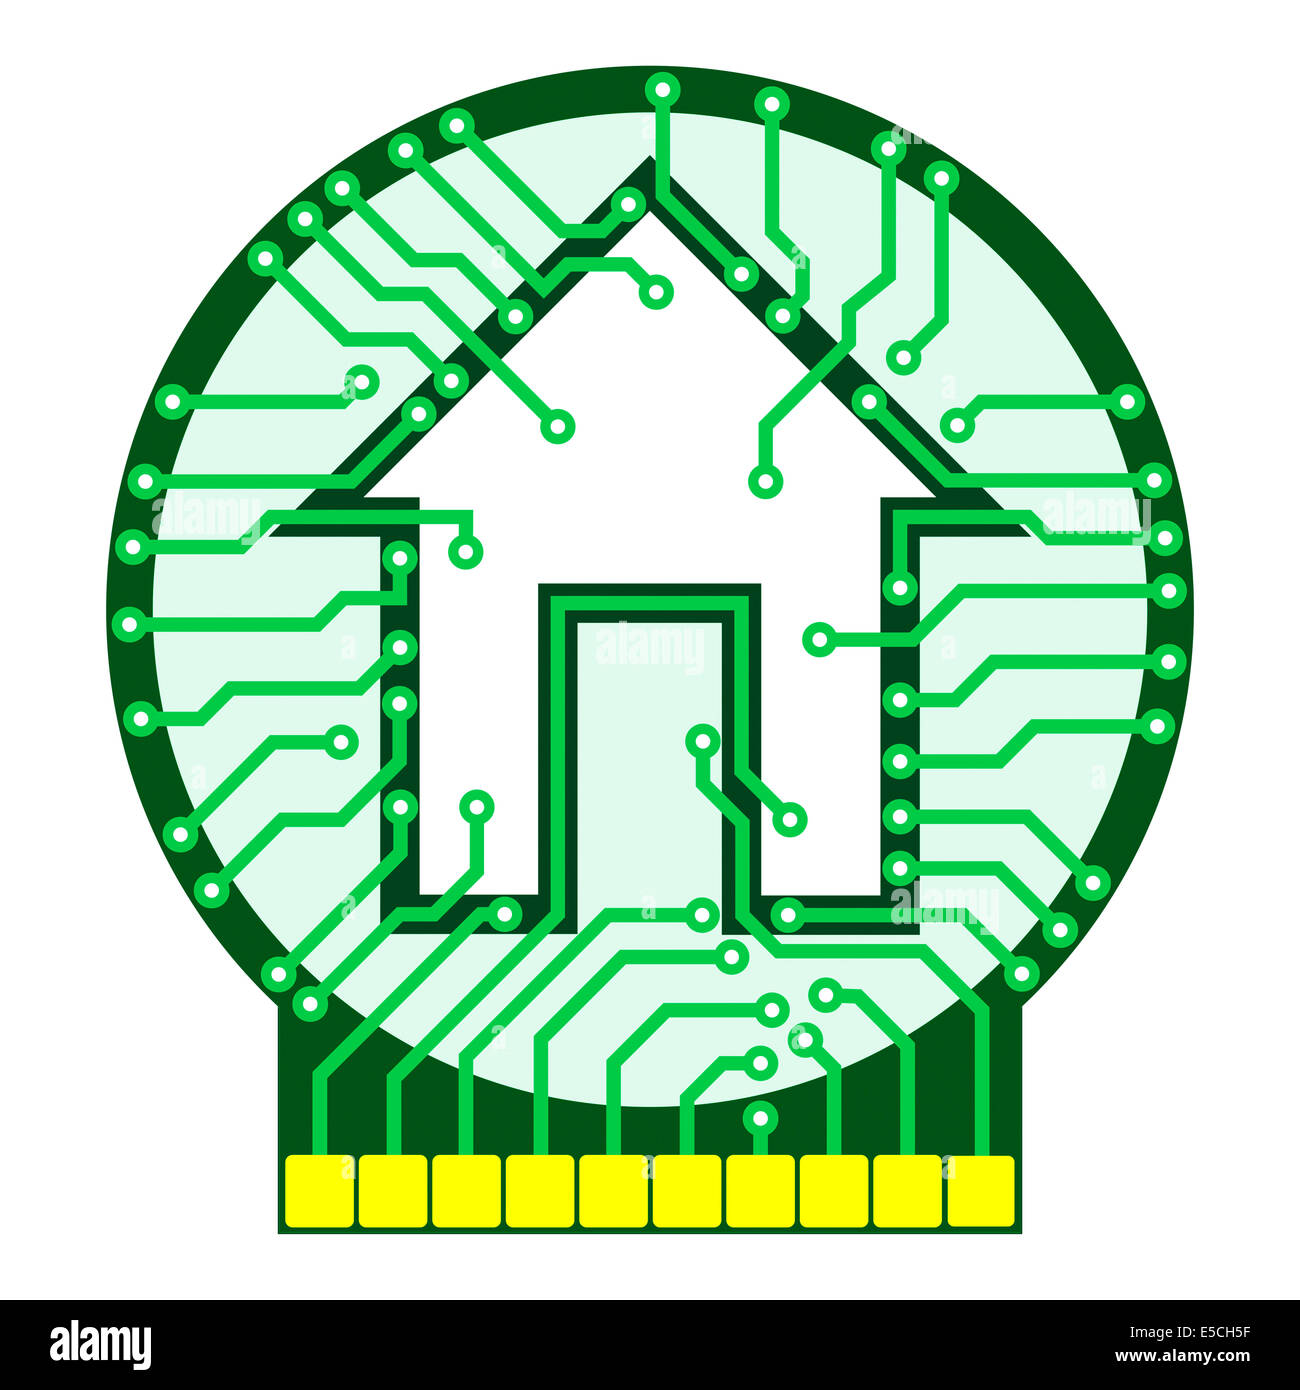 Connected home logo conceptual illustration. Circuit board with house symbol isolated on white background. Vector - Stock Image